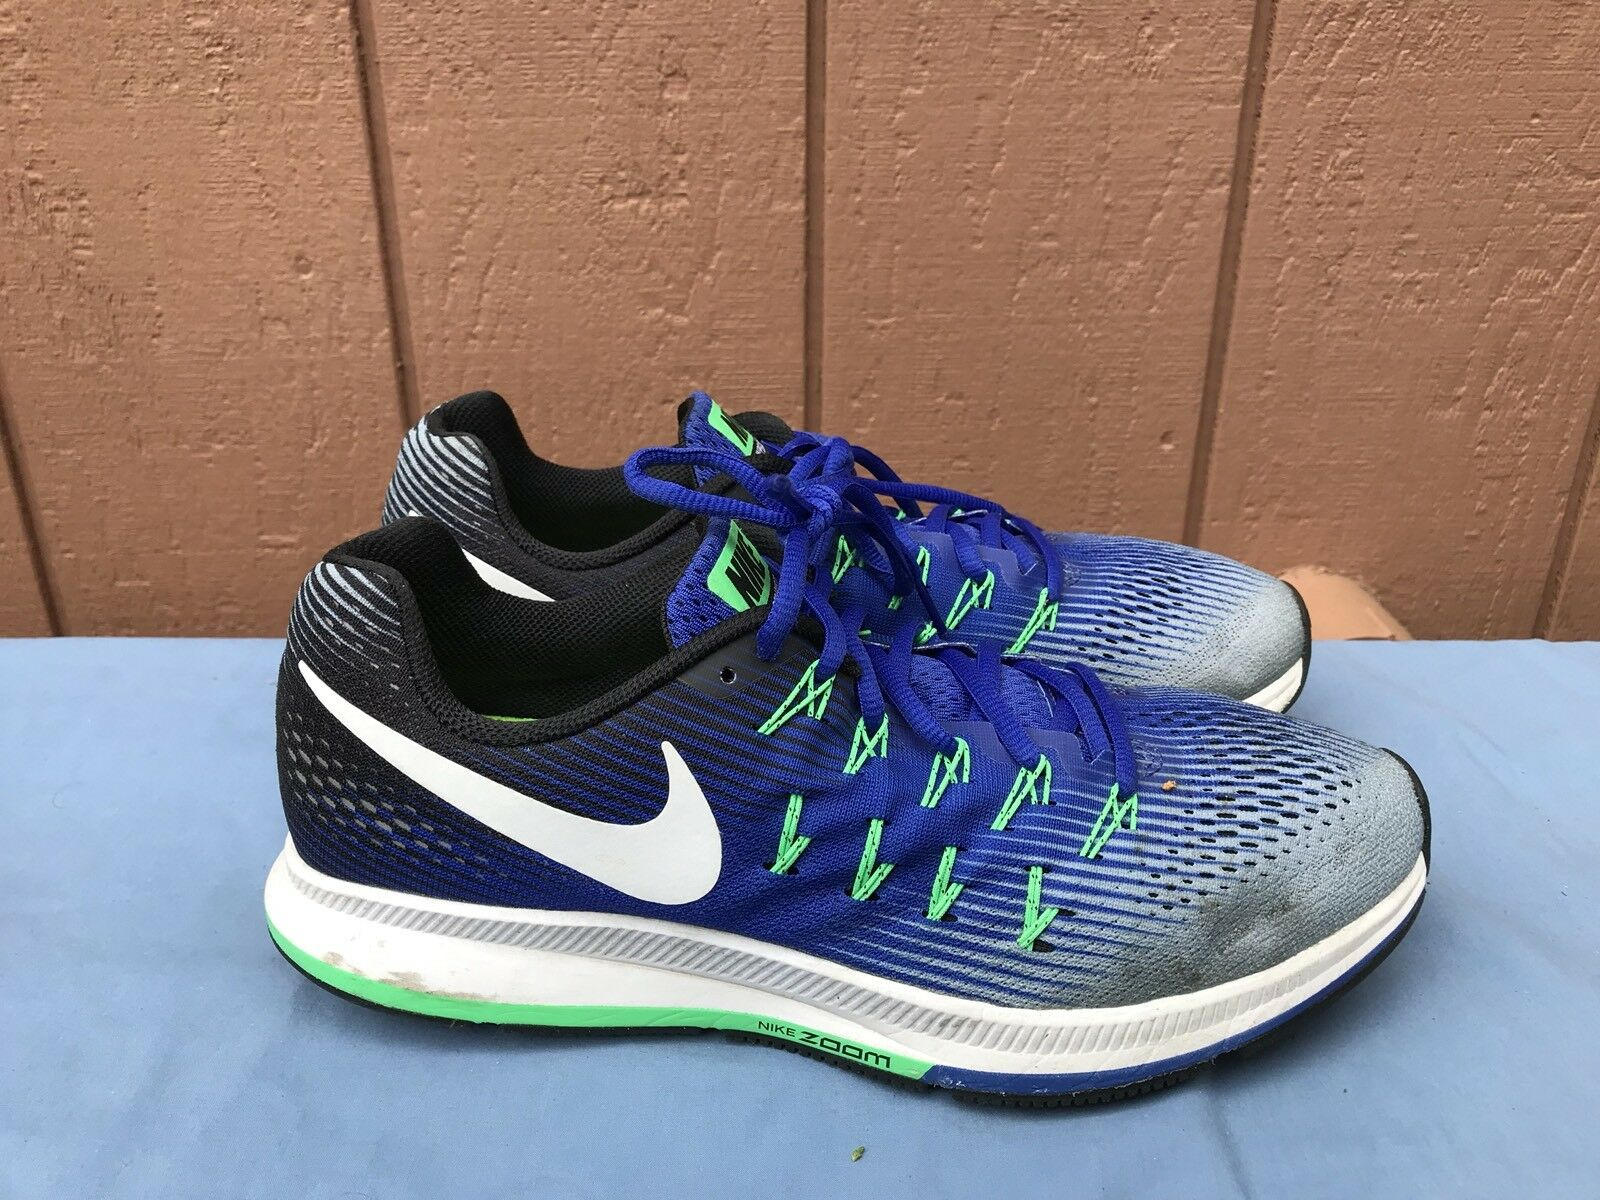 EUC Men's Nike Air Zoom Pegasus 33 Size US 10.5 Blue/Grey/White 831352-008 A2